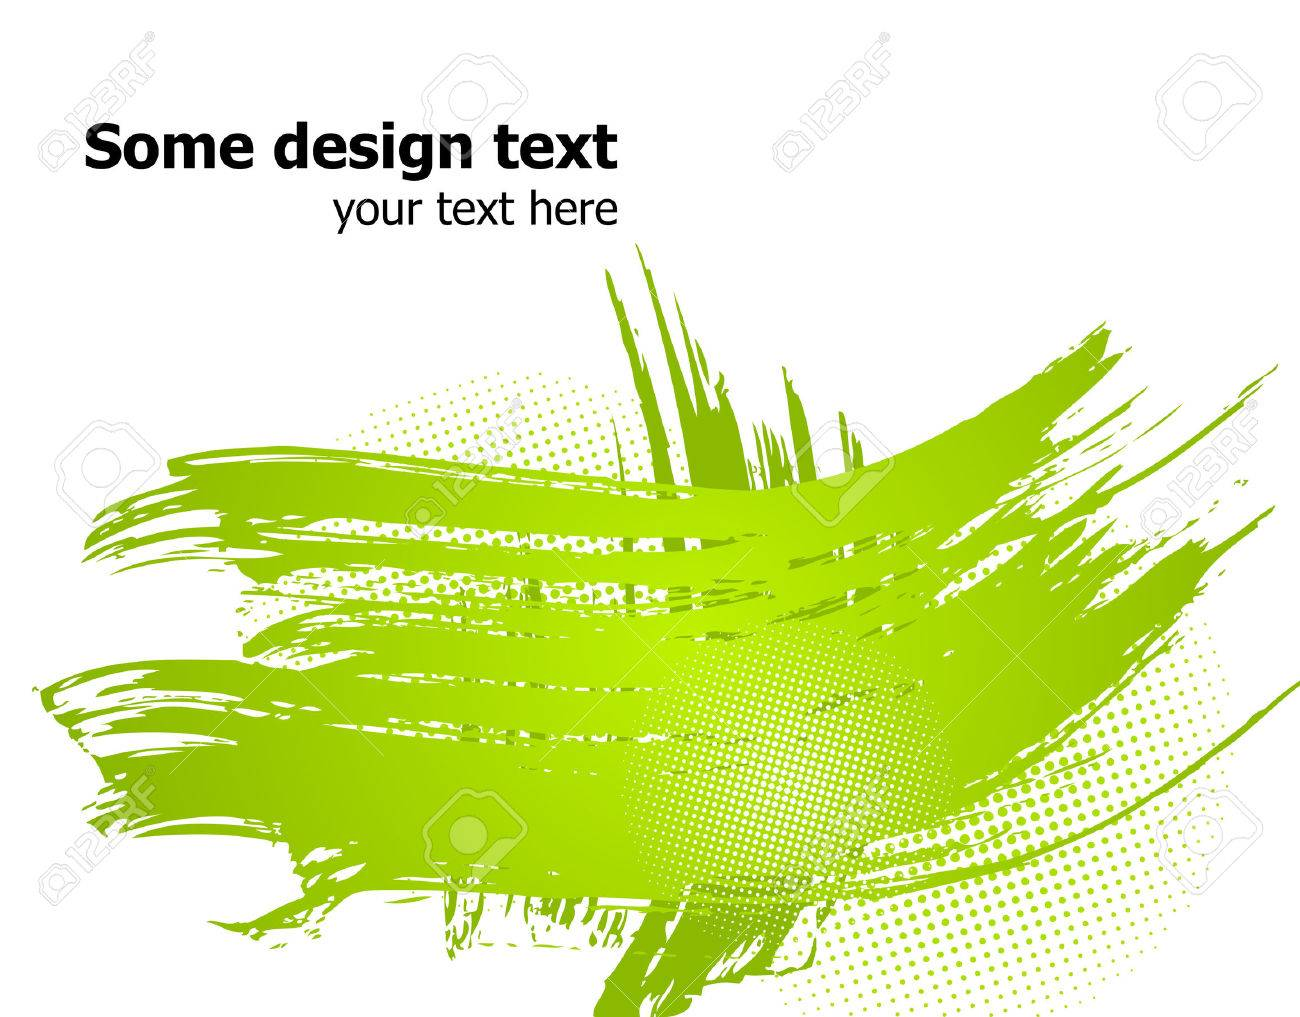 Elegance paint splash background with place for your text. Stock Vector - 6577904